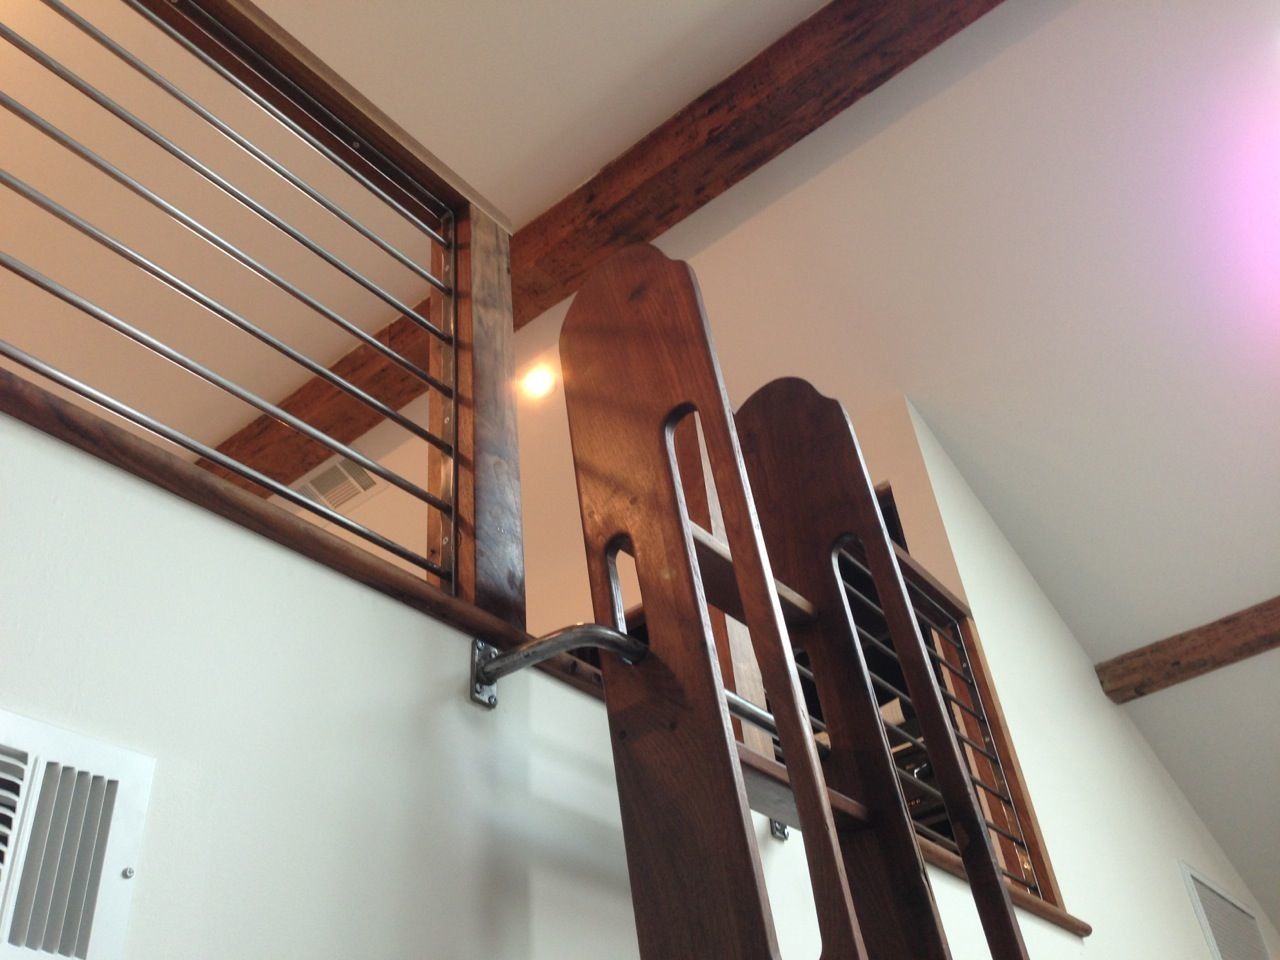 our pivoting loft ladder adds an extra layer of safety by holding the ladder in place